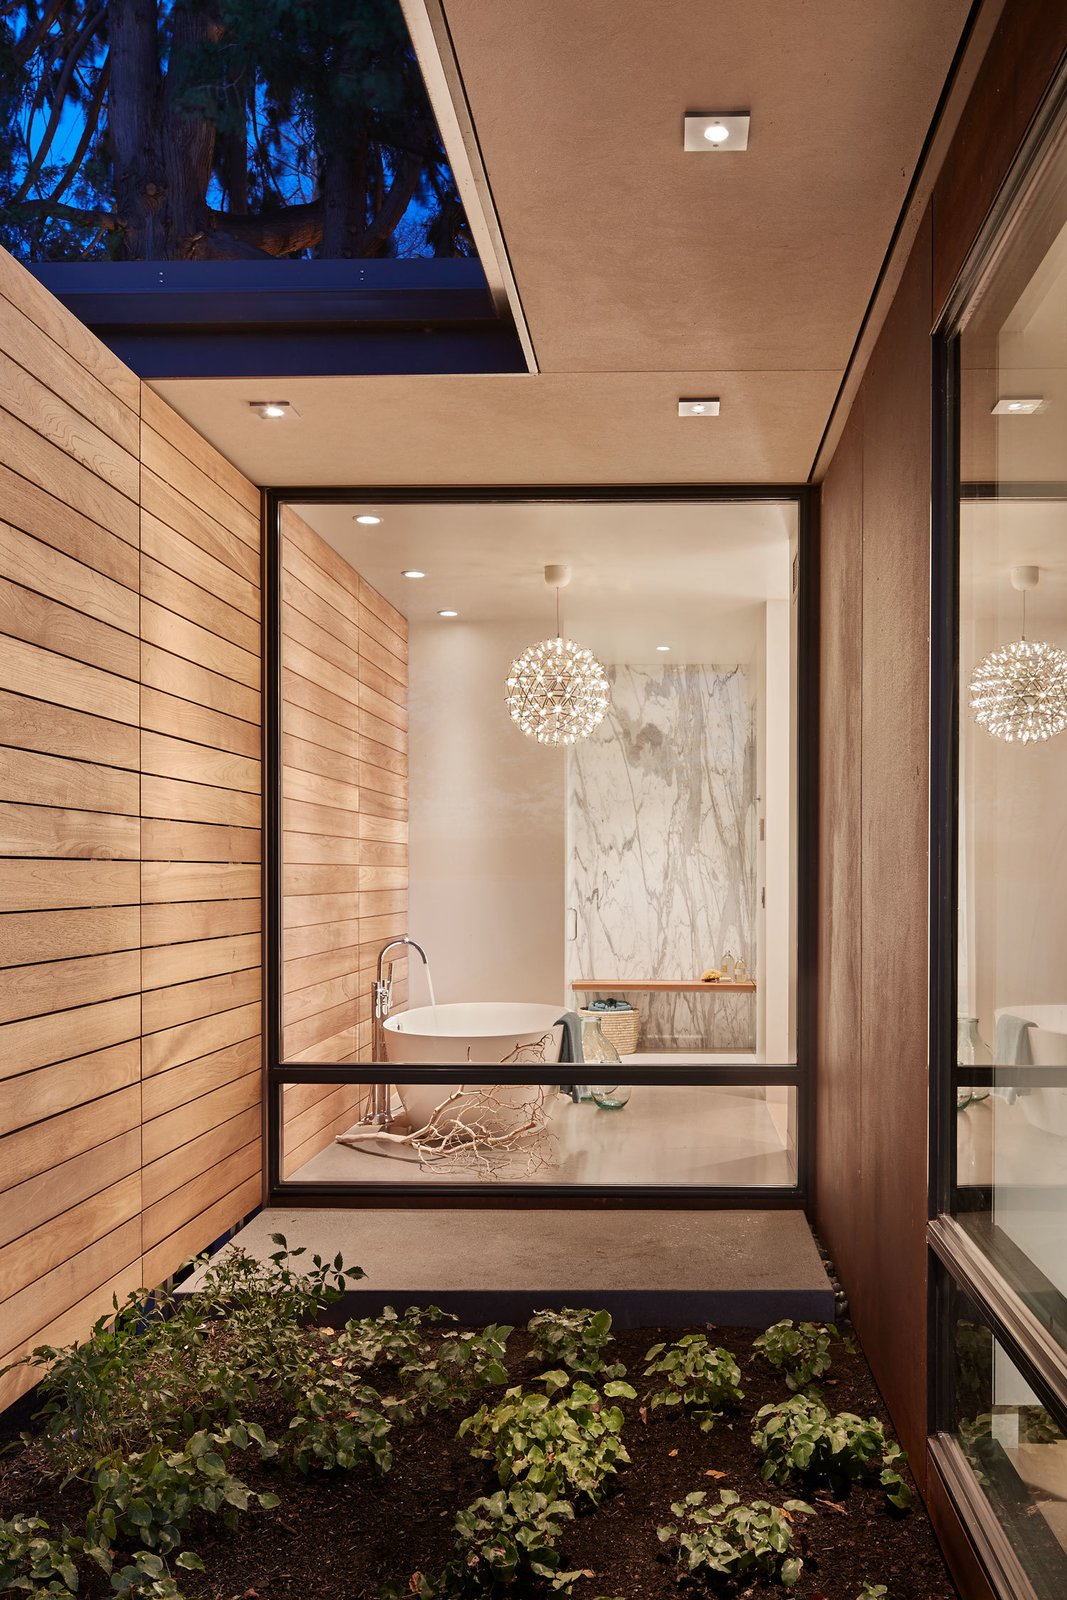 Bath Room, Pendant Lighting, Marble Wall, and Freestanding Tub The teak paneling continues  through to the exterior  Union Bay Residence by NB Design Group